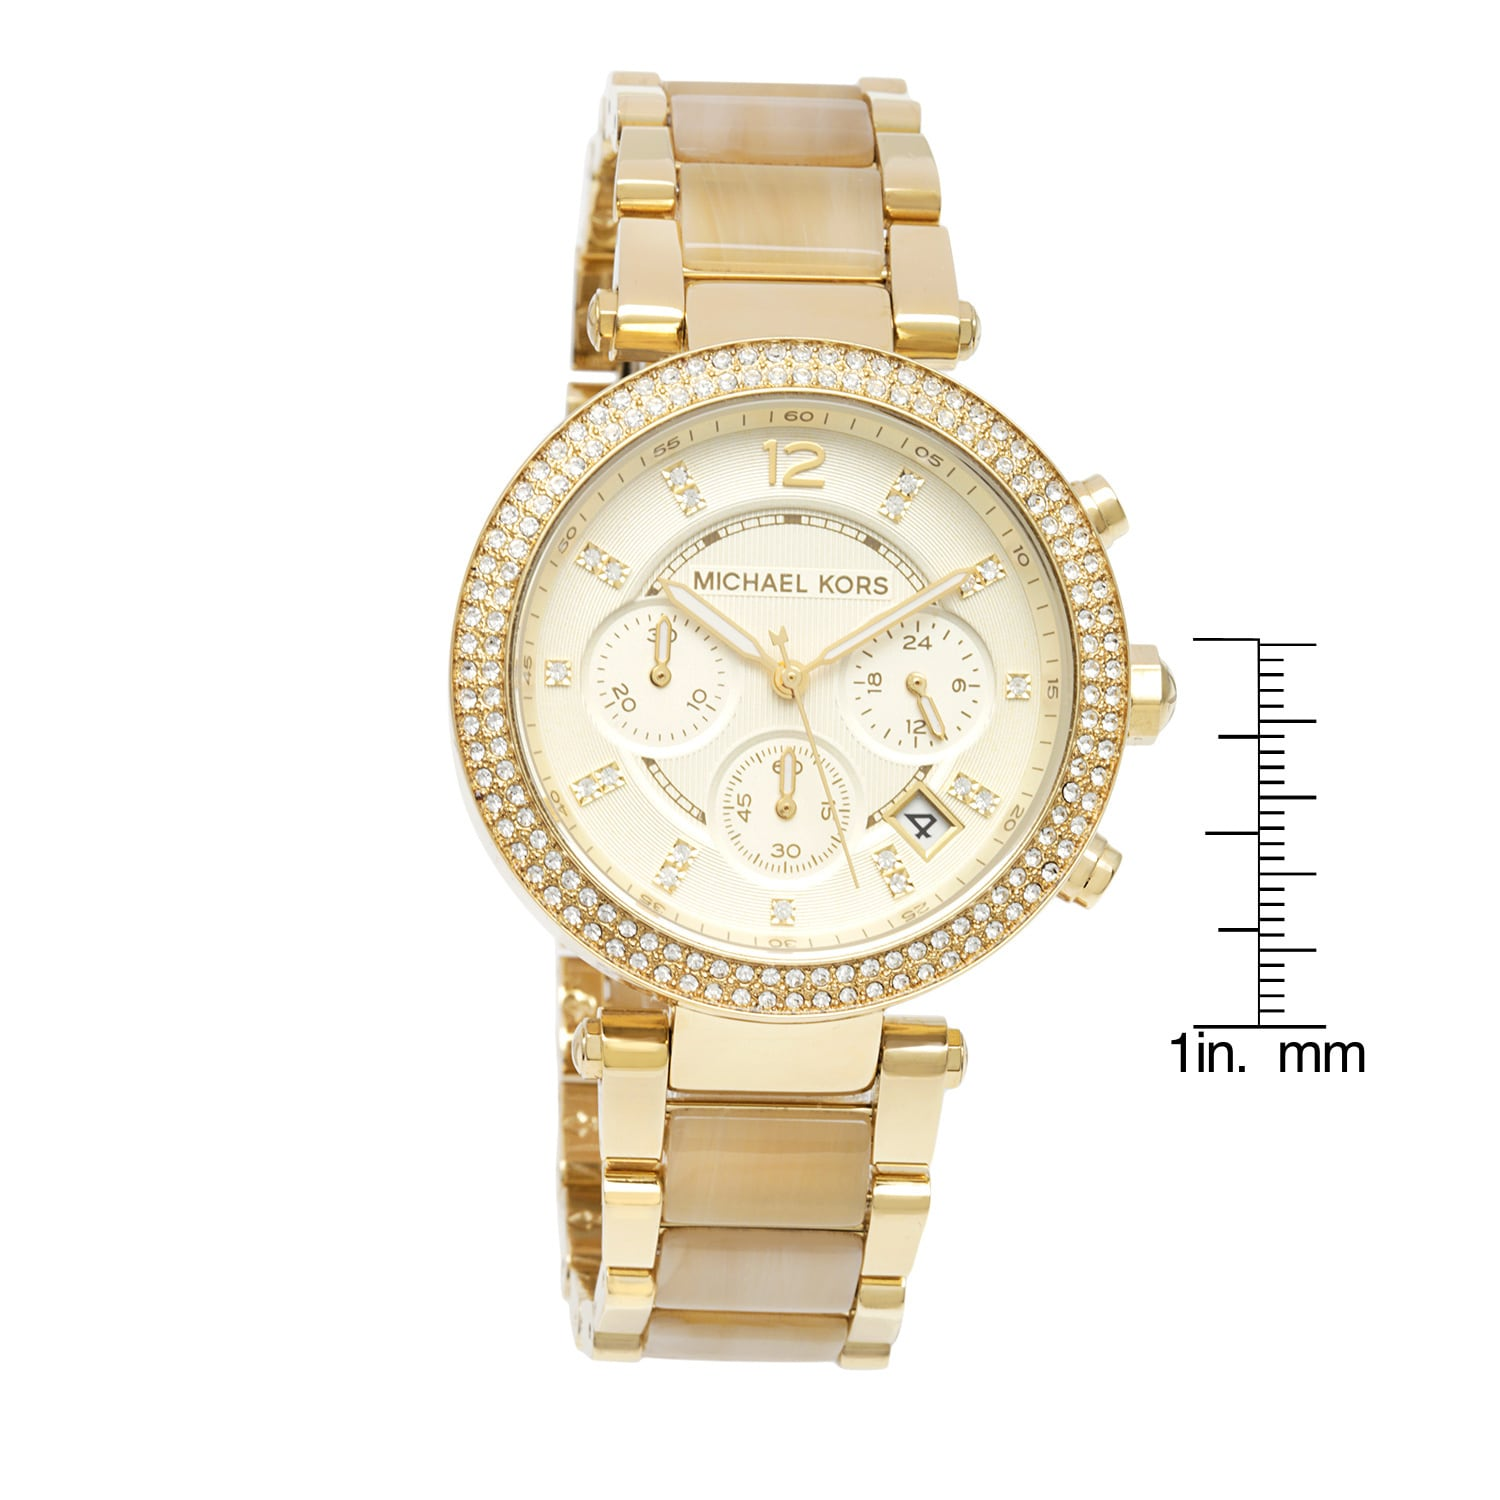 75b82665b165 Shop Michael Kors Women s MK5632  Parker  Chronograph Goldtone Watch - Gold  - Free Shipping Today - Overstock - 8755026